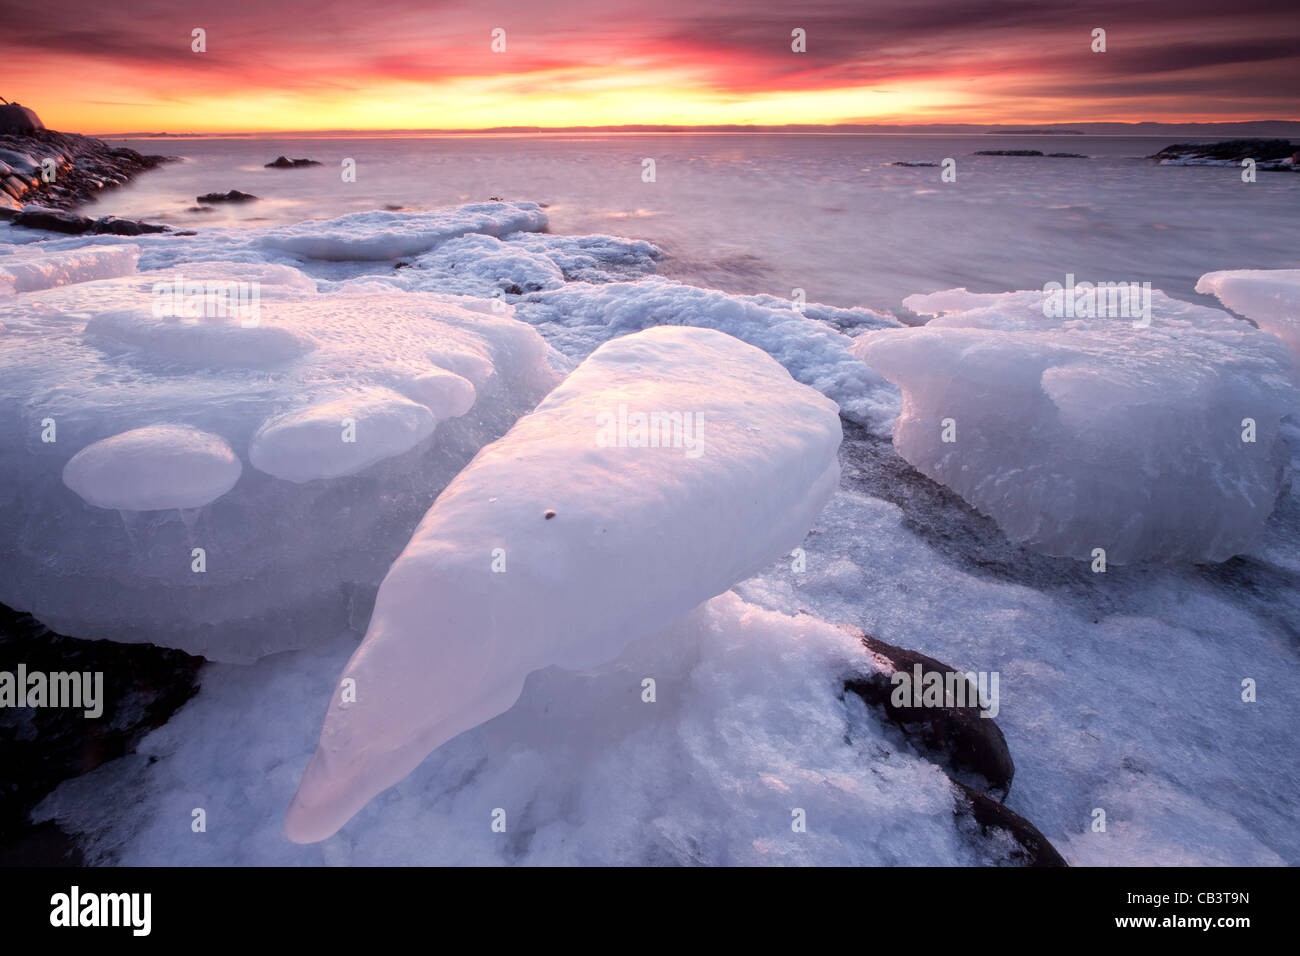 Colorful evening and ice formations at Nes on the island Jeløy in Moss kommune, Østfold fylke, Norway. - Stock Image